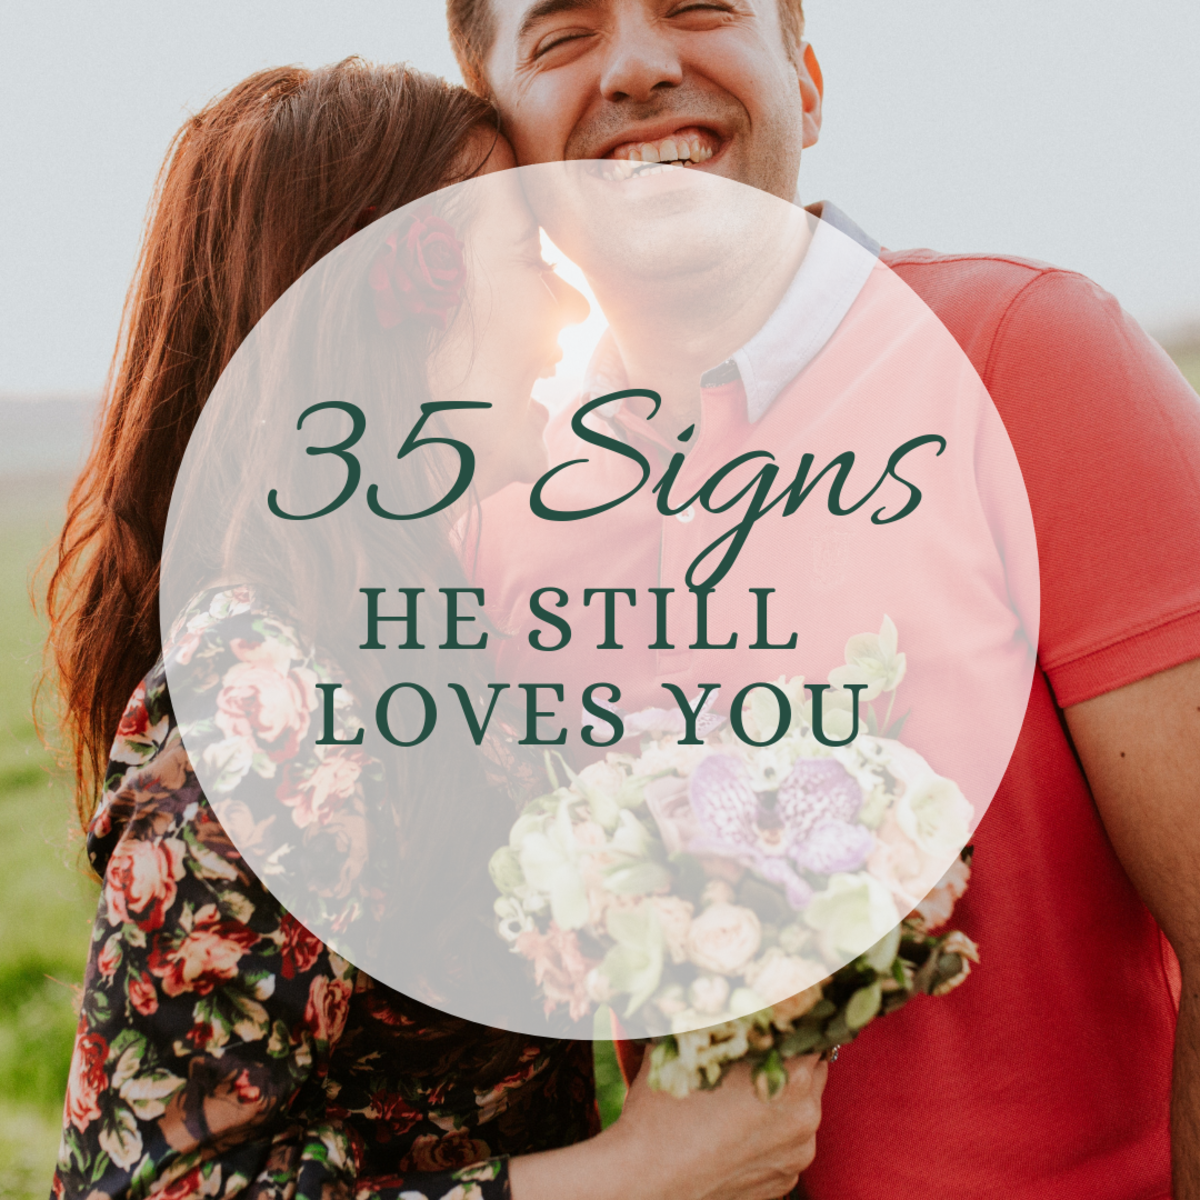 what are the signs that your husband loves you